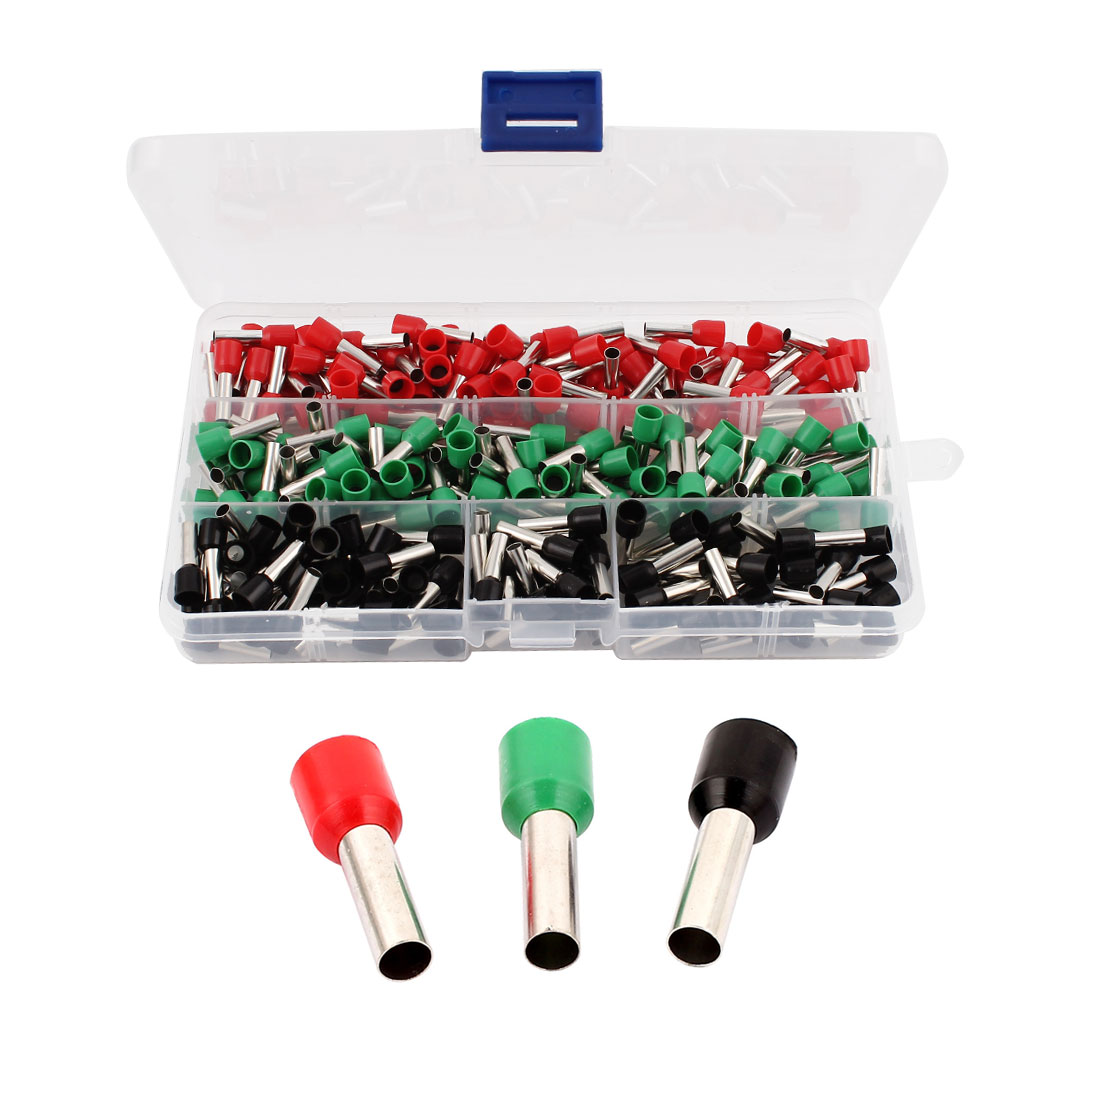 240Pcs E6012 Green Black Red Plastic Tube Wiring Insulated Bootlace Ferrules Terminals Cable Connector for 10AWG Wire